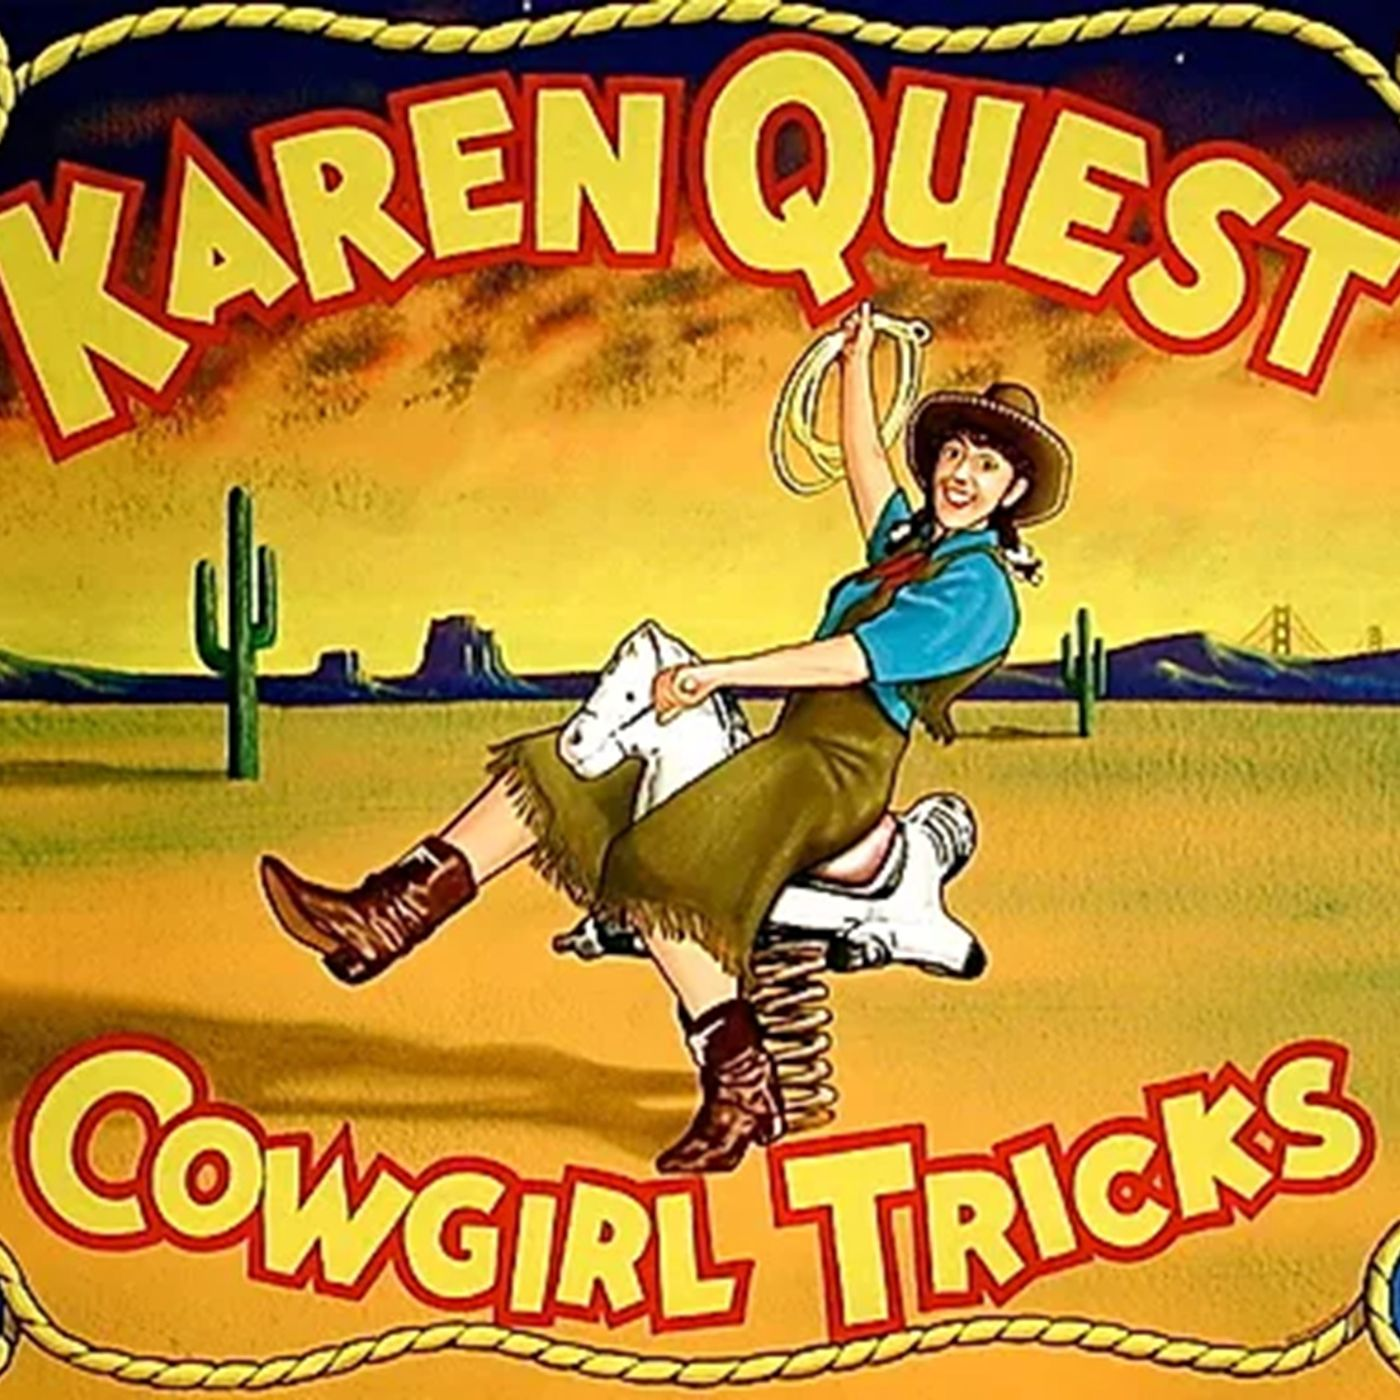 Countyfairgrounds presents America's Funniest Cowgirl